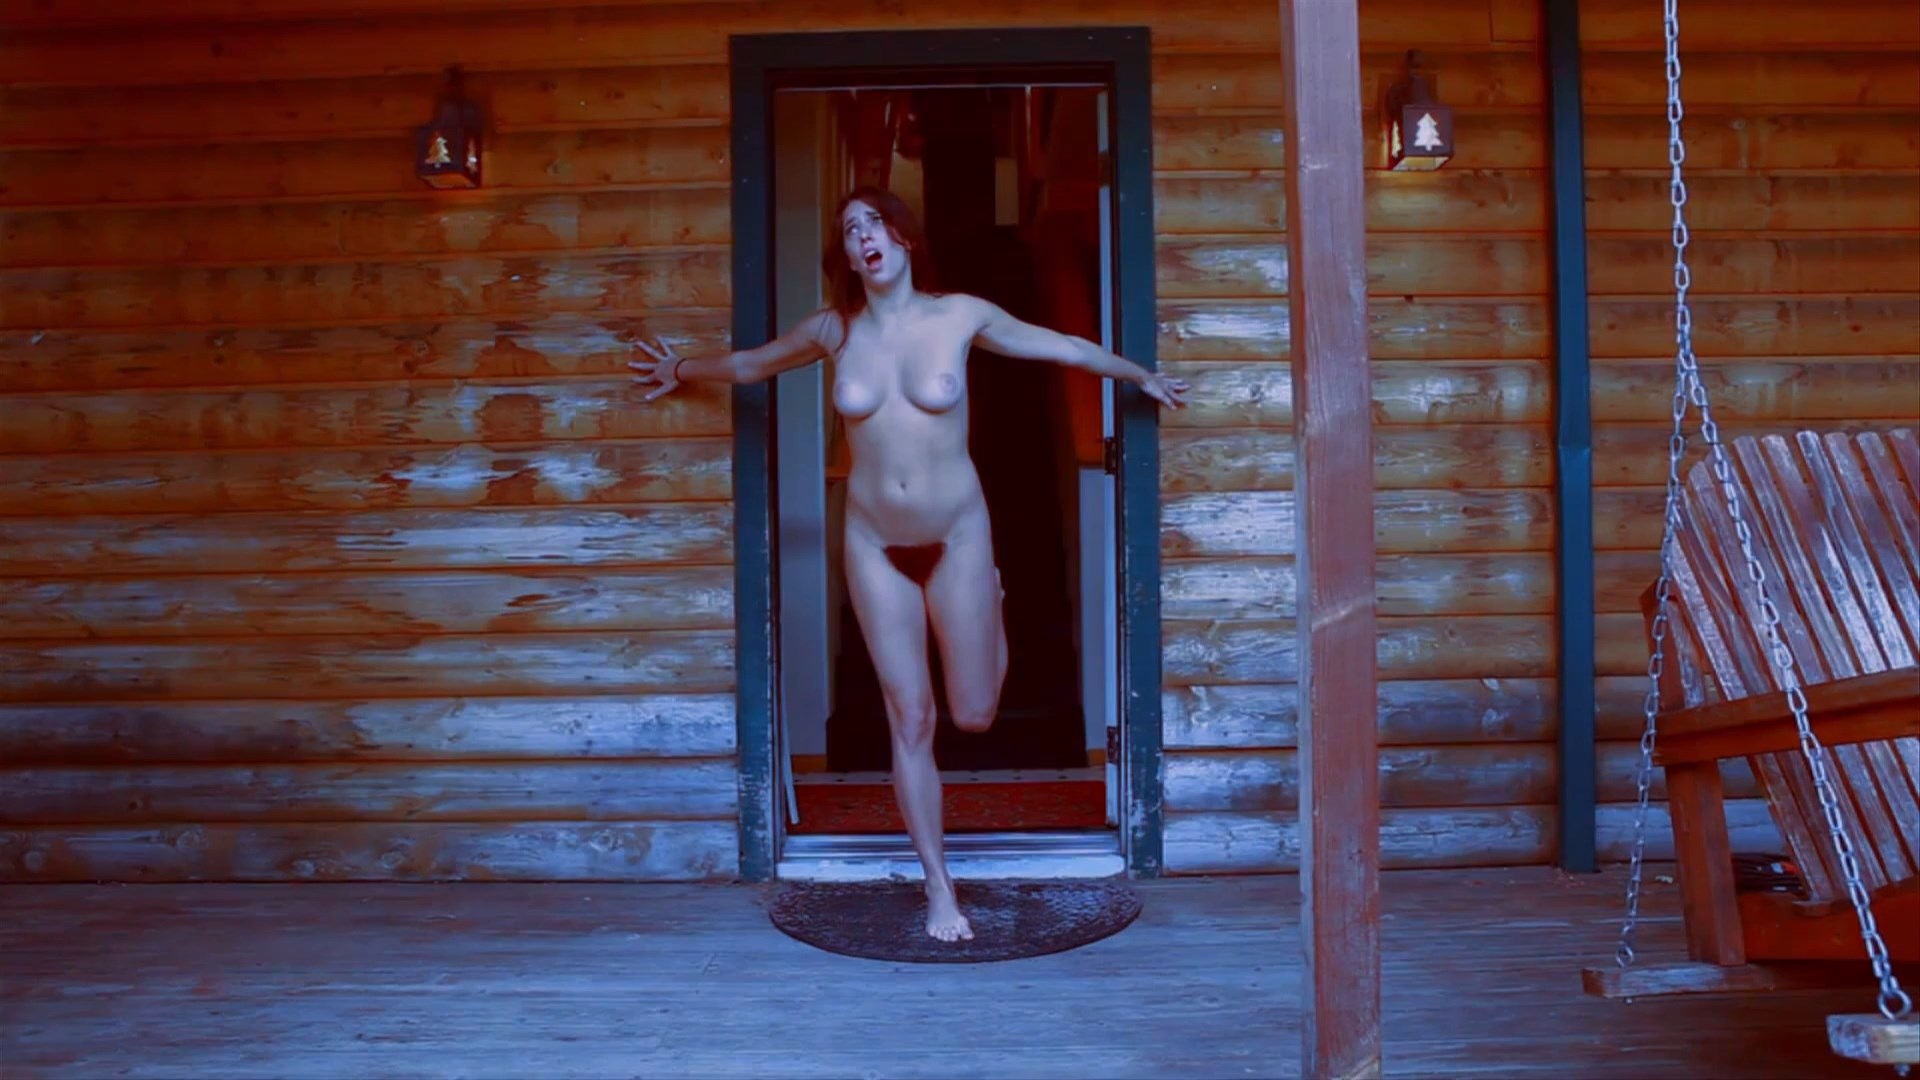 Julianne Tura nude - Bloody Bloody Bible Camp (2012)